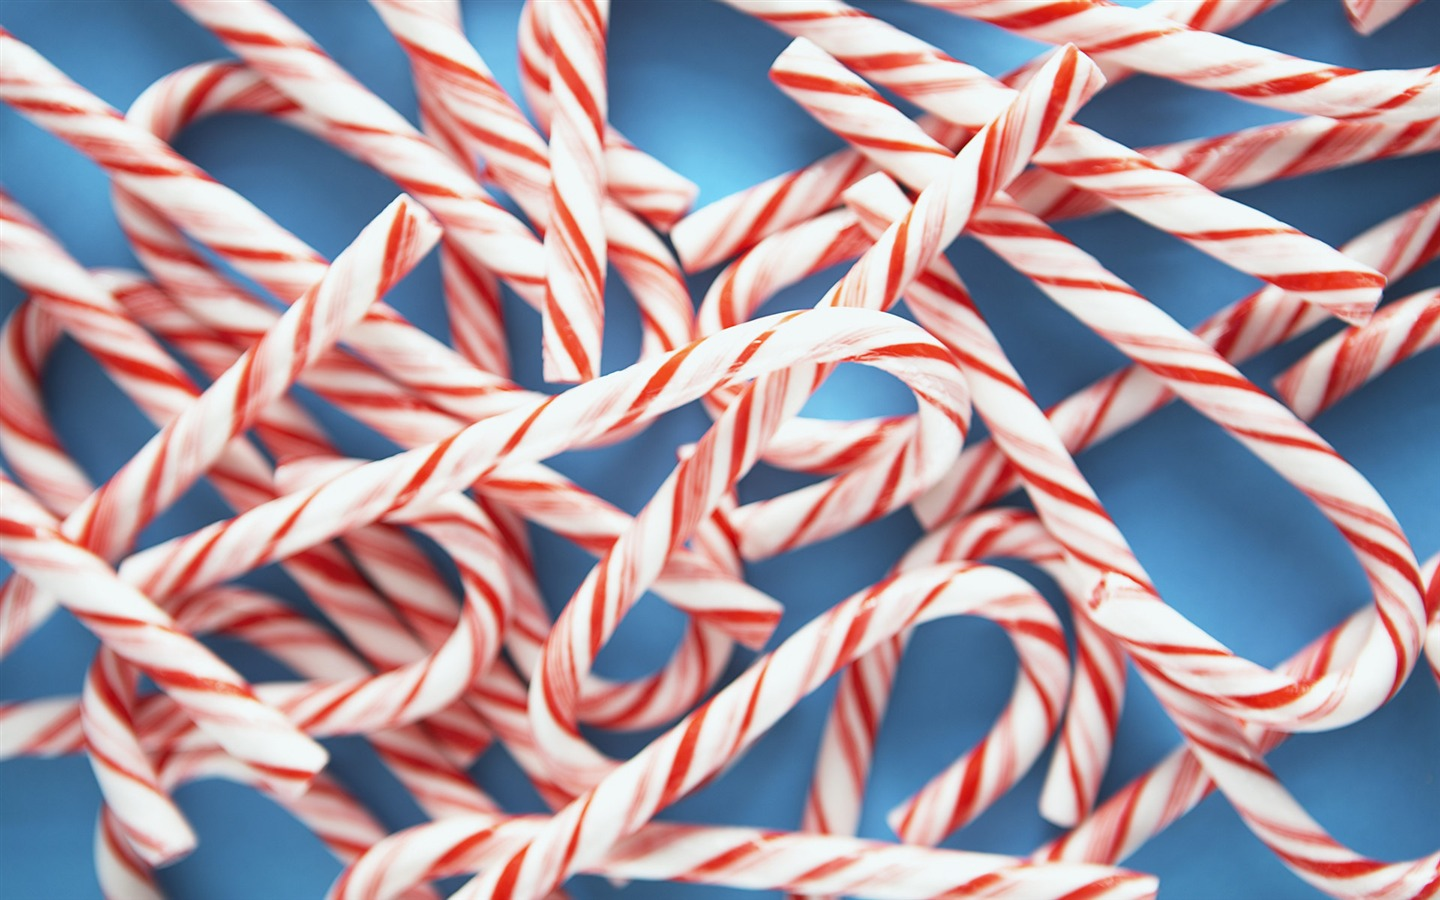 Full Hd Wallpaper For Laptop 10 Wonderful Hd Candy Cane Wallpapers